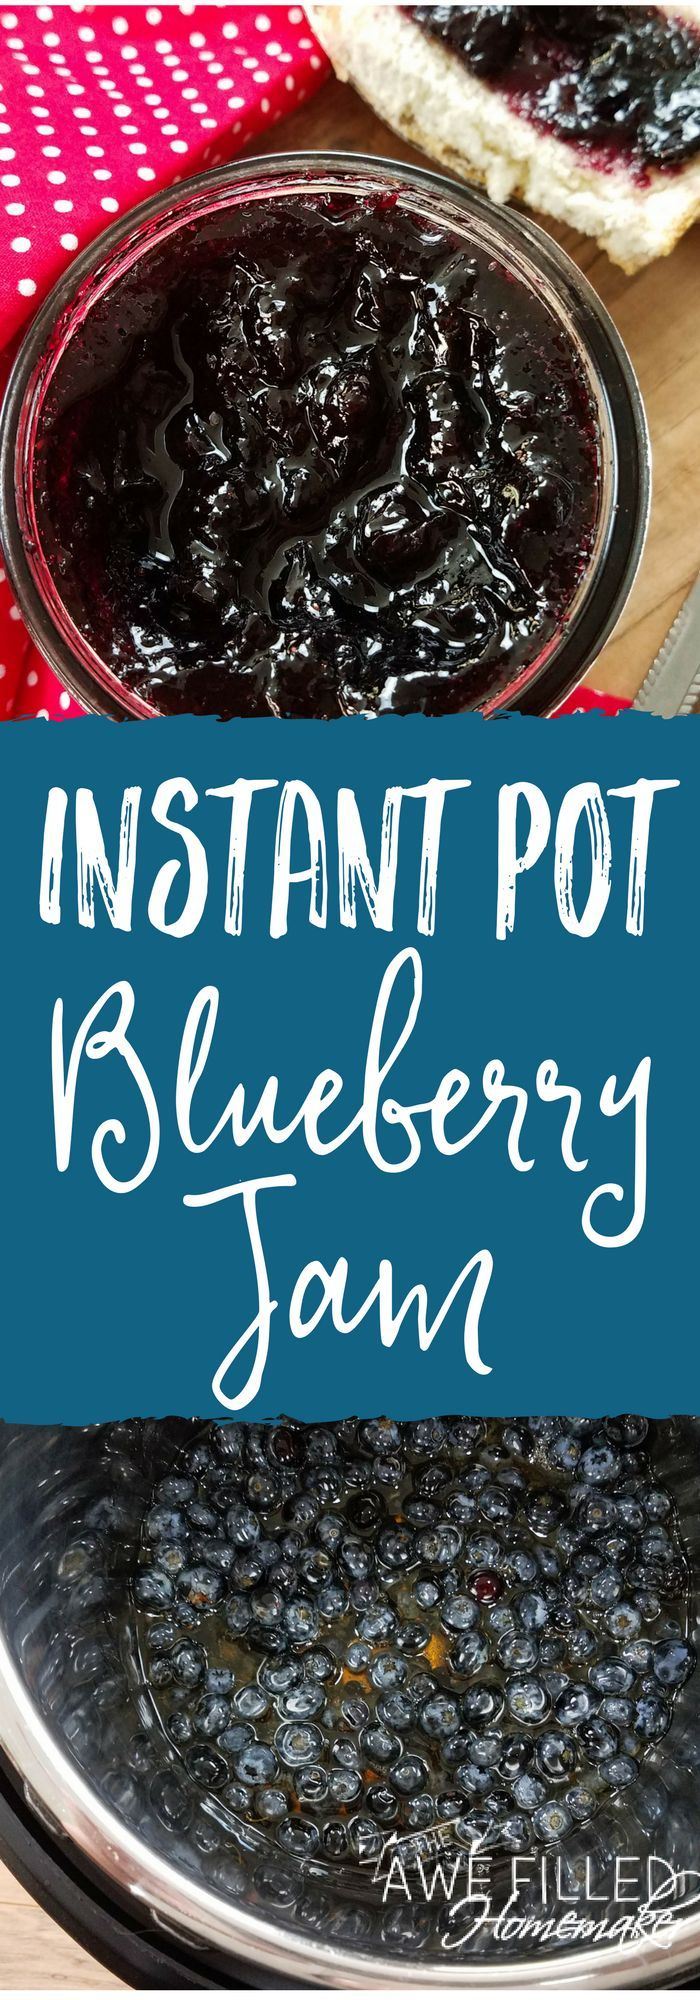 I absolutely love canning and preserving foodYou all will not want to miss trying this instant pot blueberry jam recipe! It is so so delicious and easy! #instantpot #blueberryjam #jam #canning #instantpotblueberryjam #homemade  via @AFHomemaker